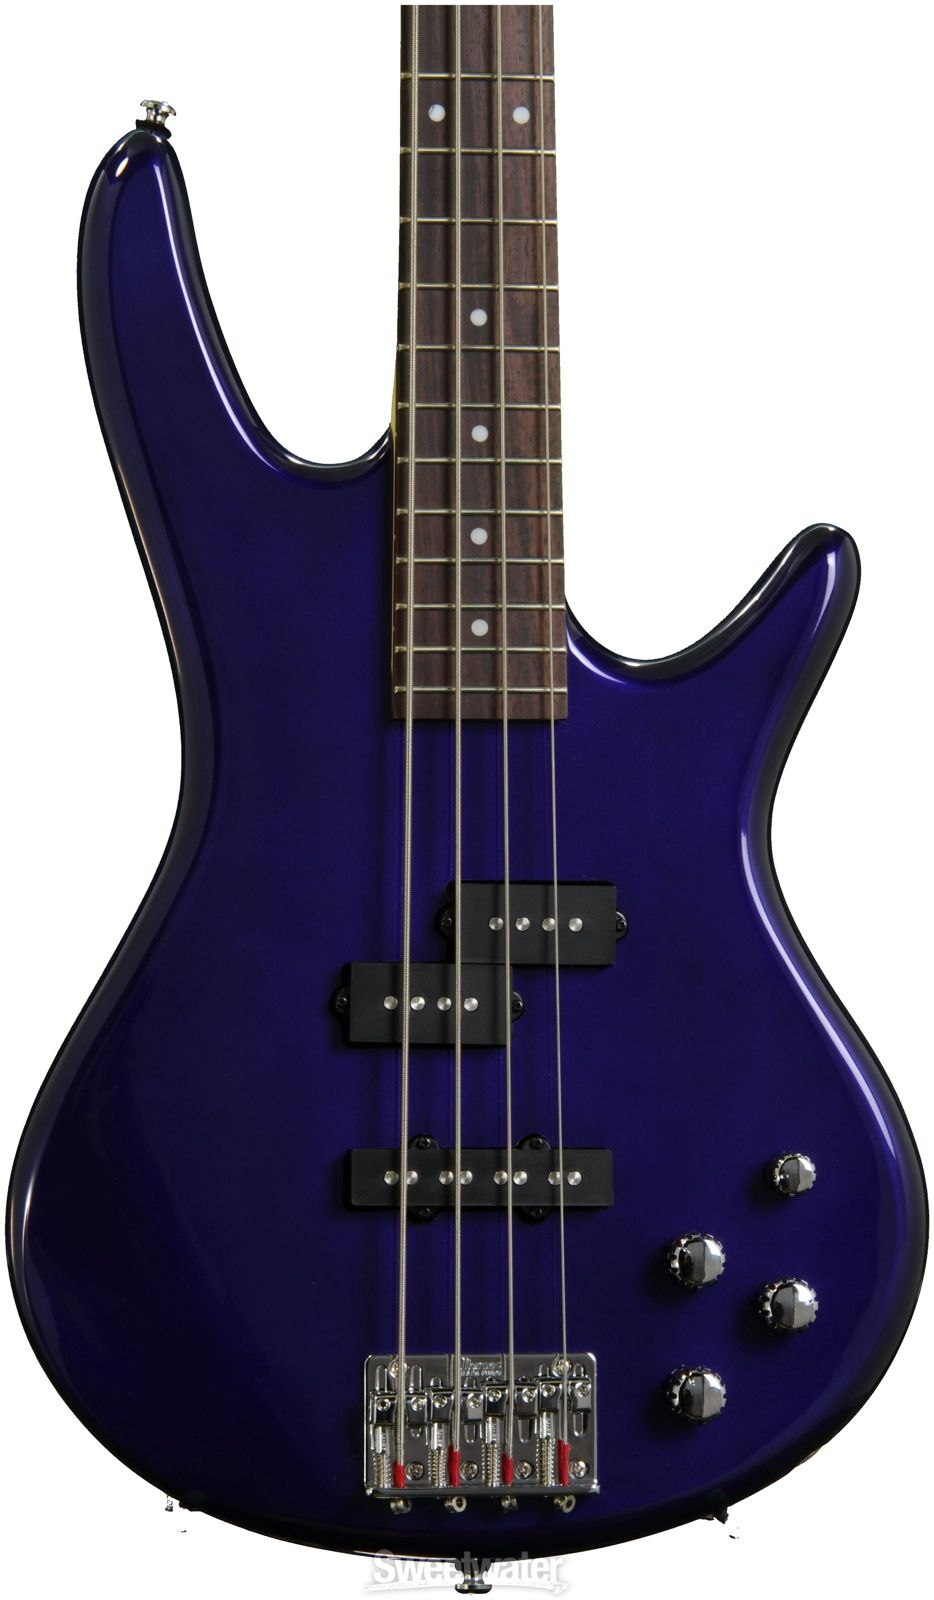 Ibanez Gsr200 Active Electric Bass Guitar In Jewel Blue In The